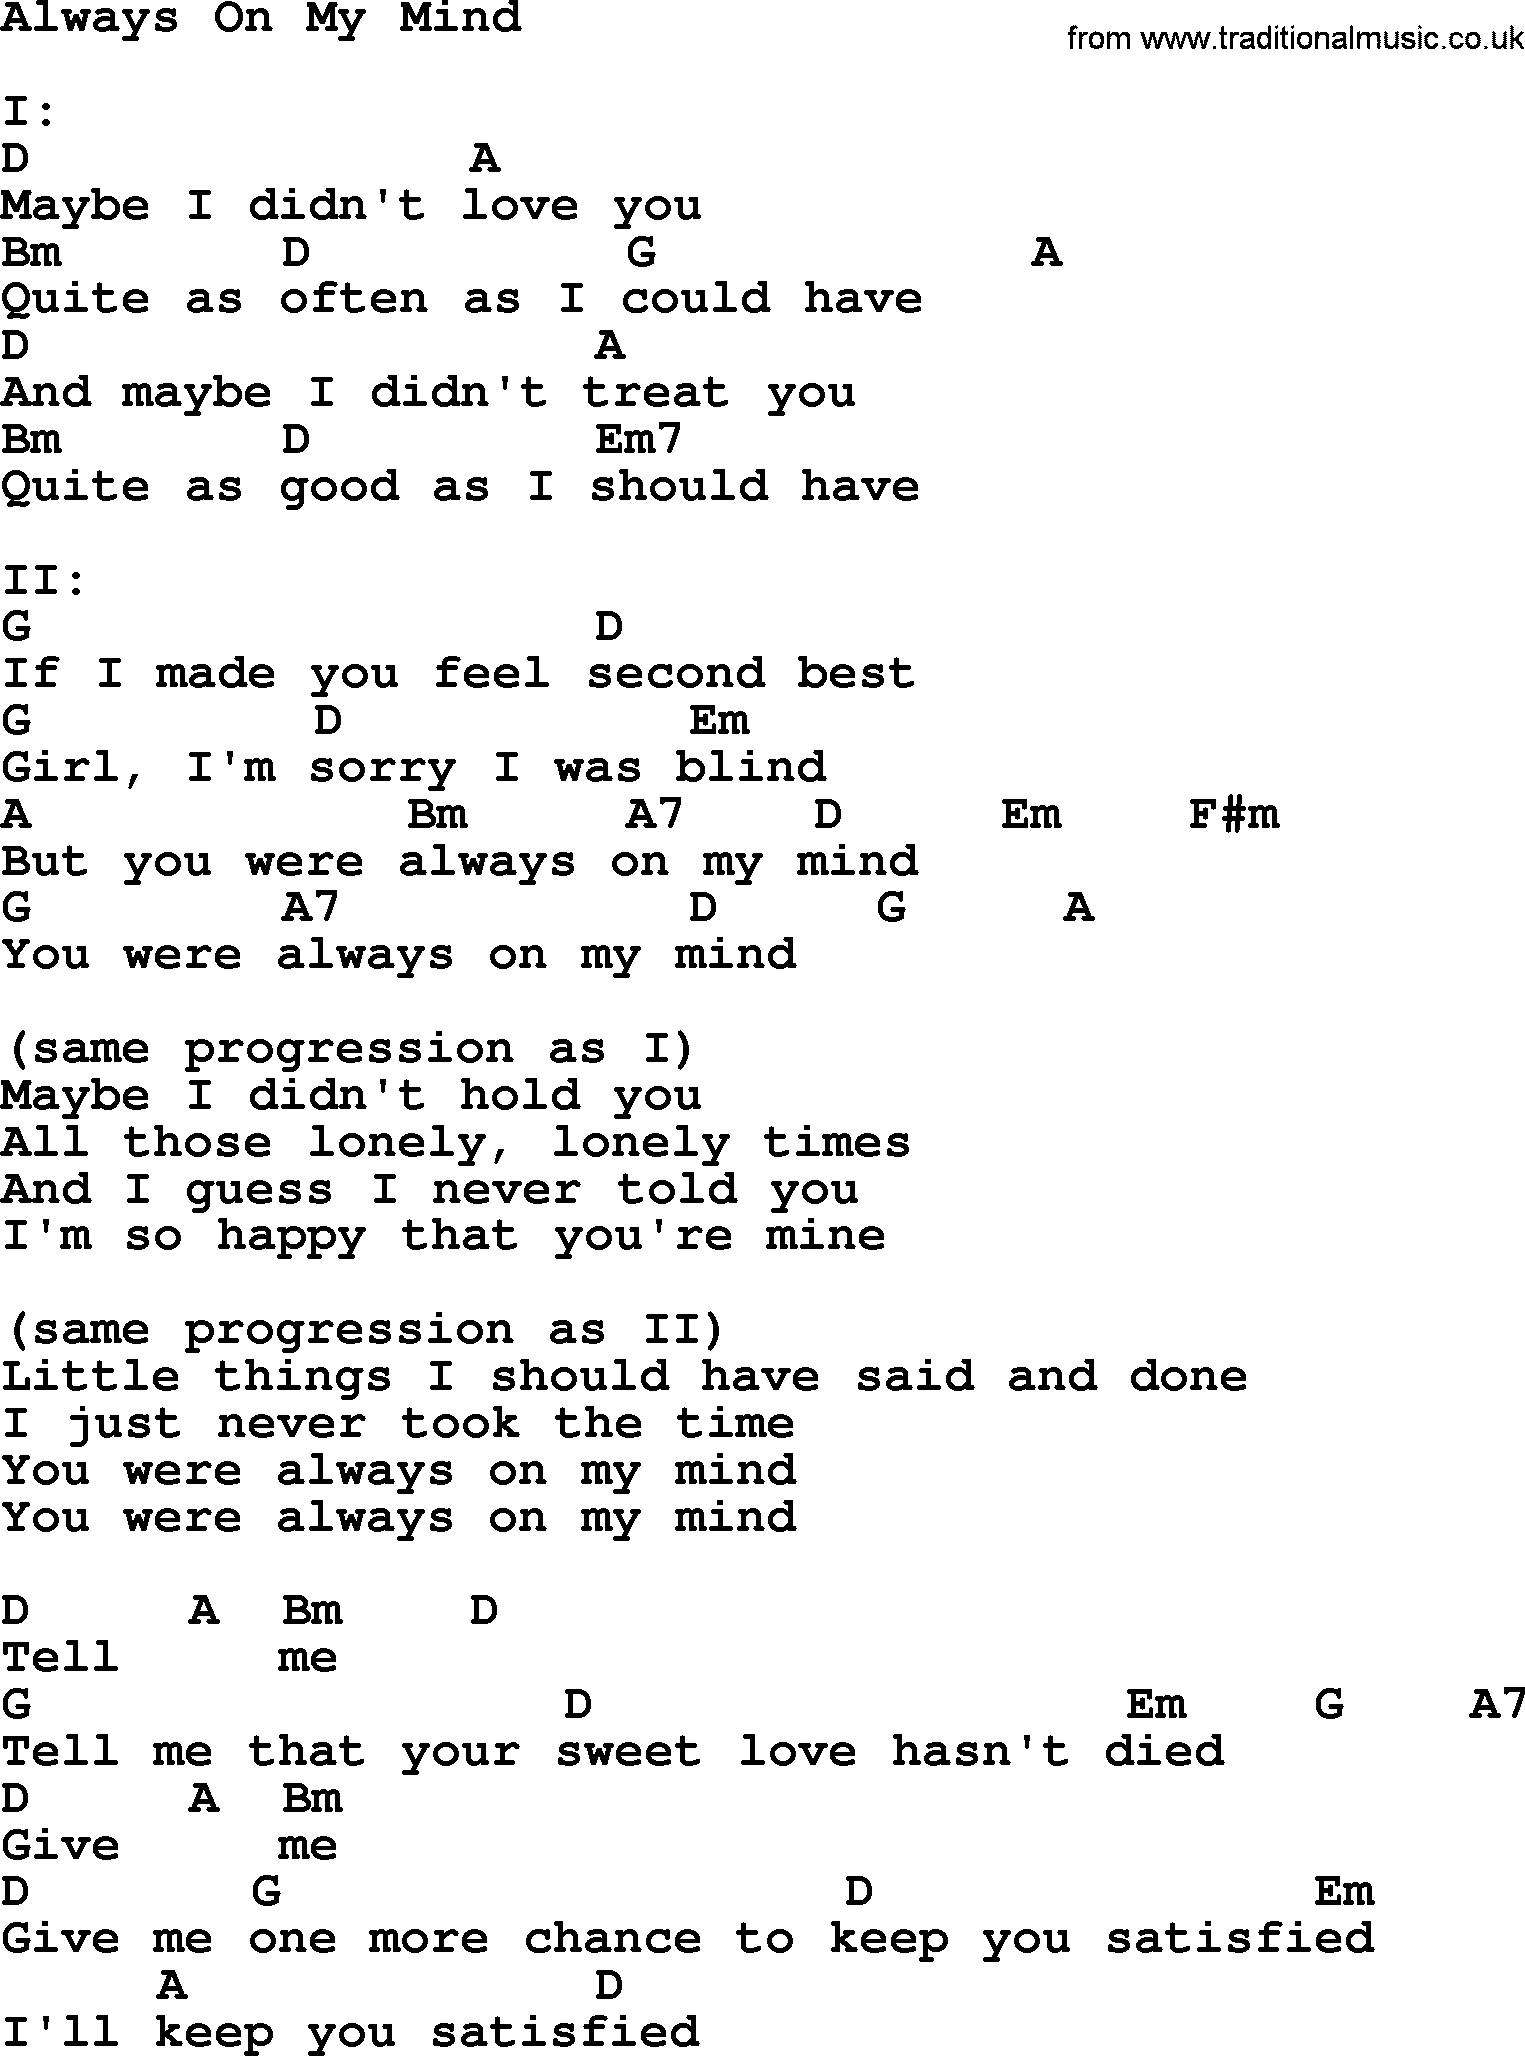 Willie Nelson Song Always On My Mind Lyrics And Chords